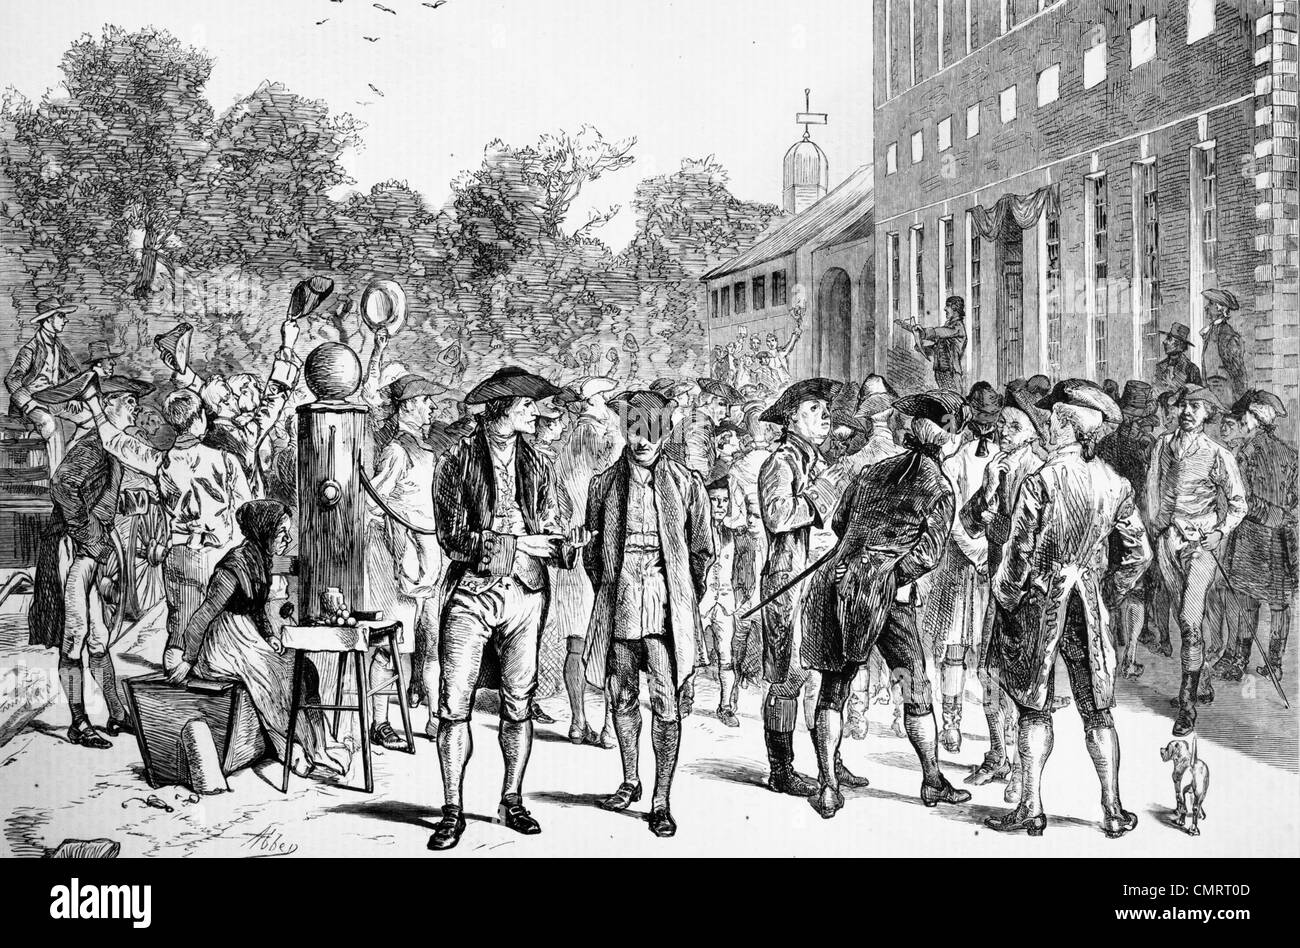 1770s JULY 8 1776 READING DECLARATION OF INDEPENDENCE BY JOHN NIXON STEPS OF INDEPENDENCE HALL PHILADELPHIA PA BY - Stock Image